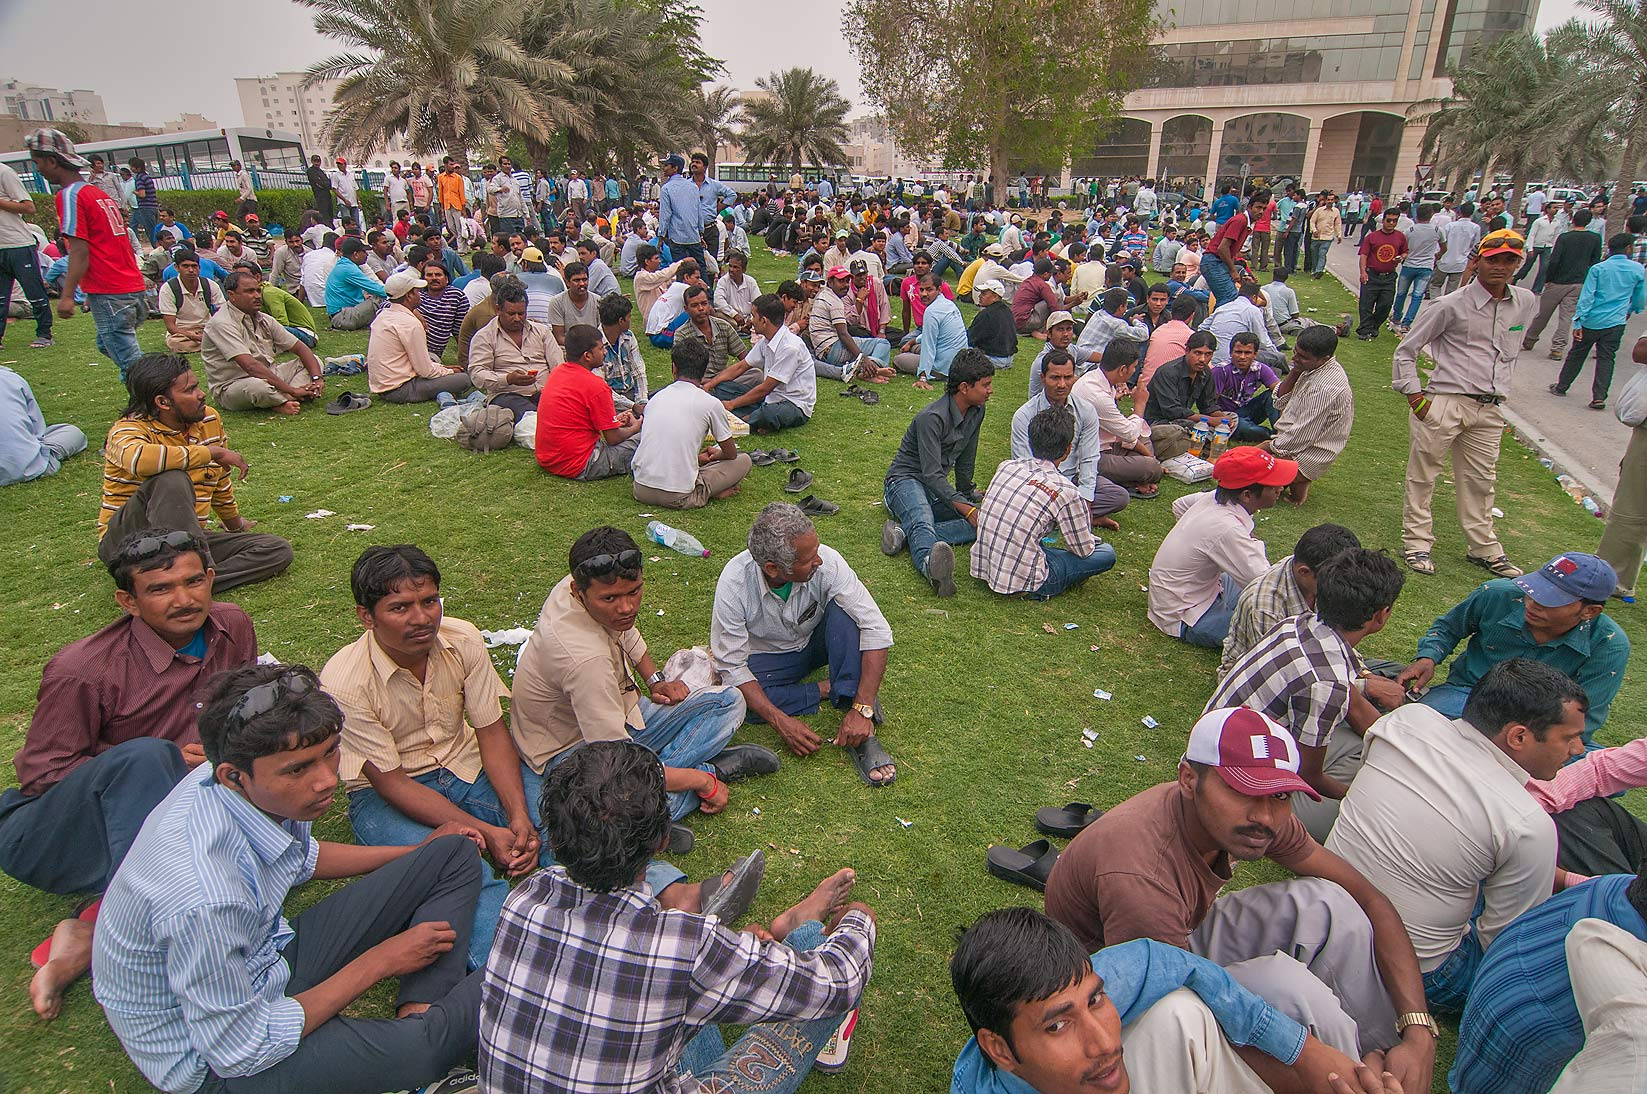 Masses of migrant workers gathering on a lawn...Bus Station Al Ghanim. Doha, Qatar